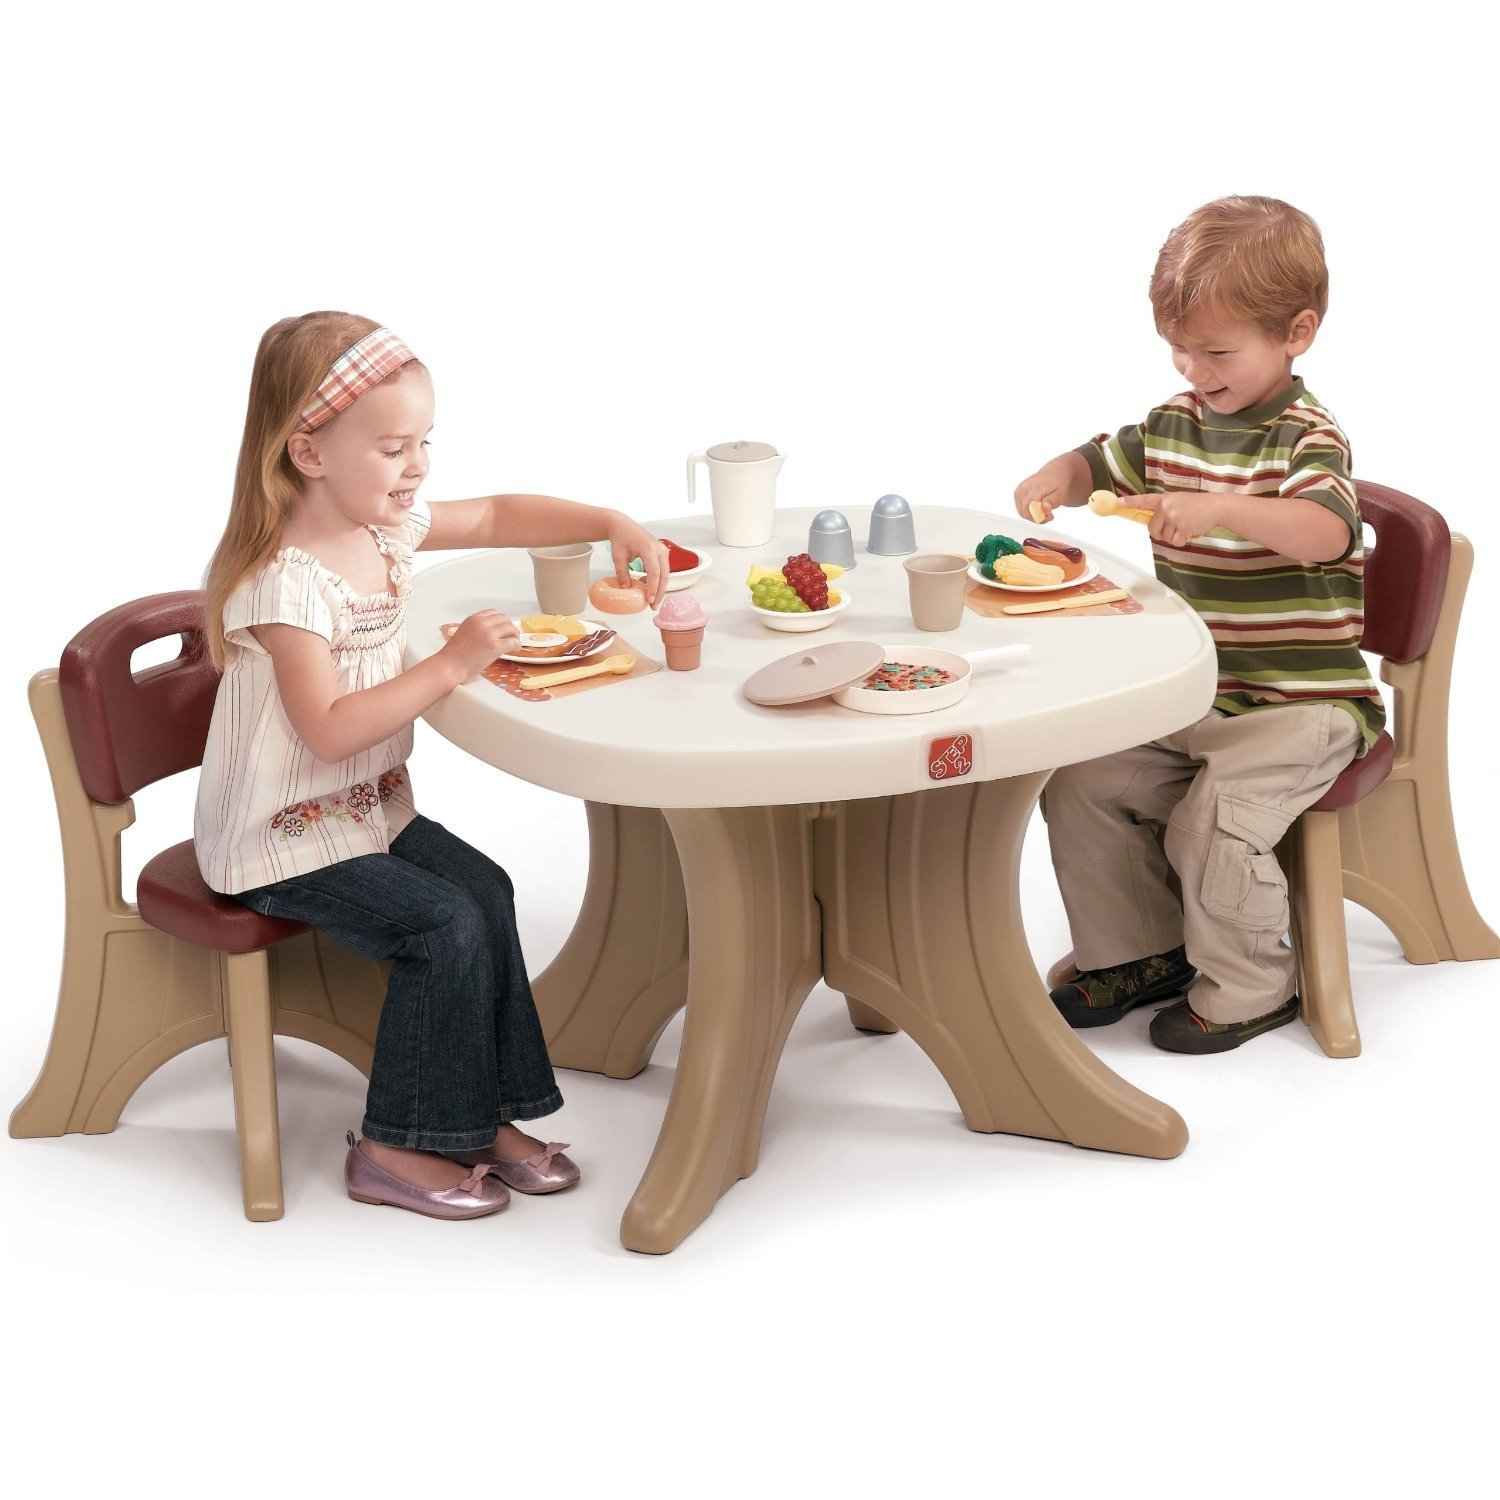 Total fab children 39 s plastic table and chair sets for Kids sitting furniture